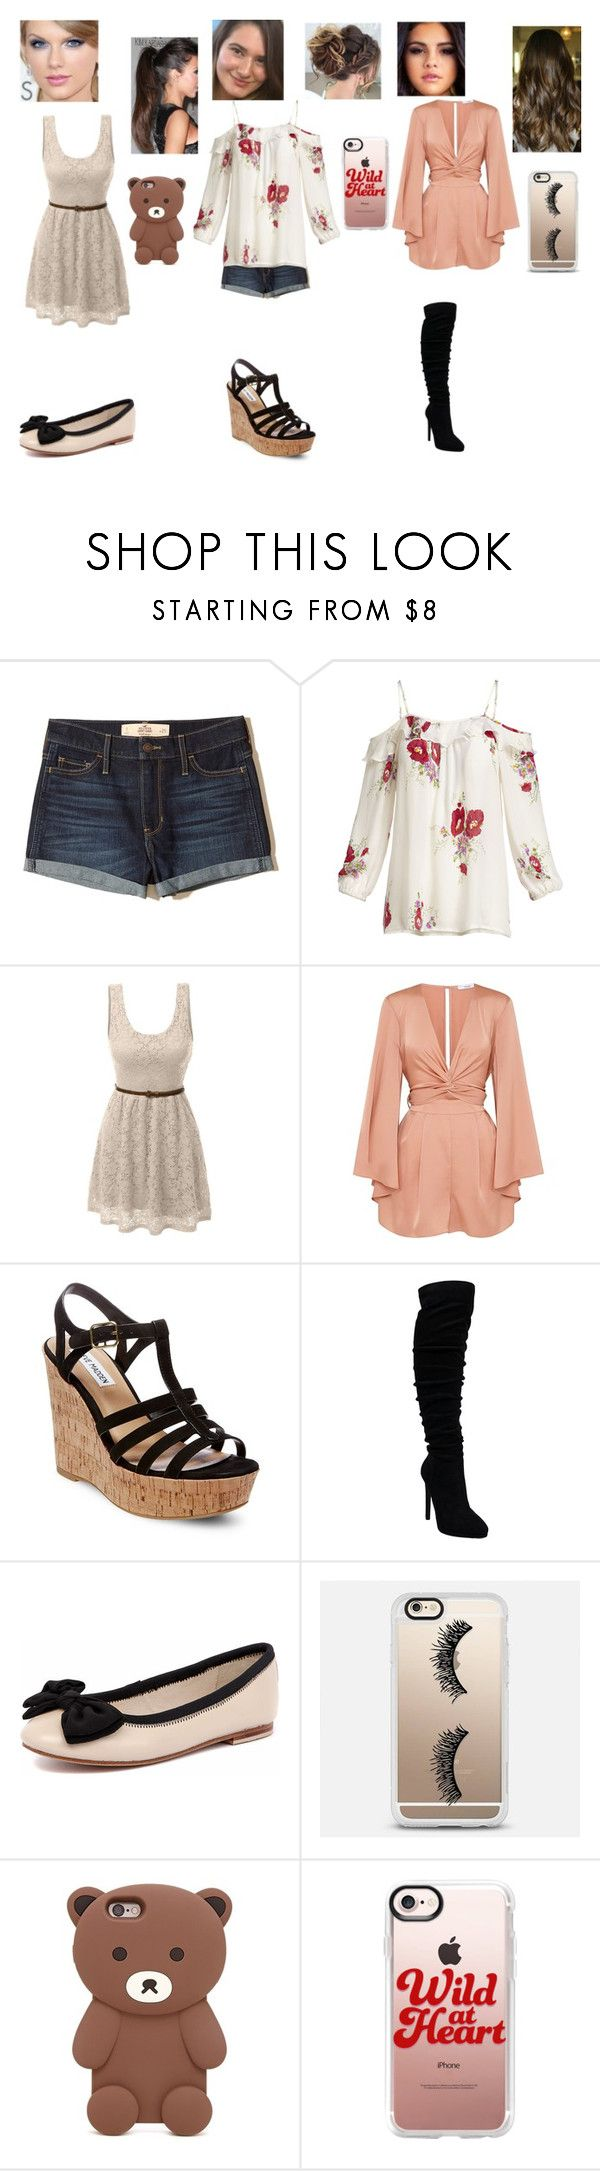 """the ellen show #4"" by y0-anna ❤ liked on Polyvore featuring Hollister Co., Joie, LE3NO, Steve Madden, Human Premium, OPTIONS, Casetify and Forever 21"